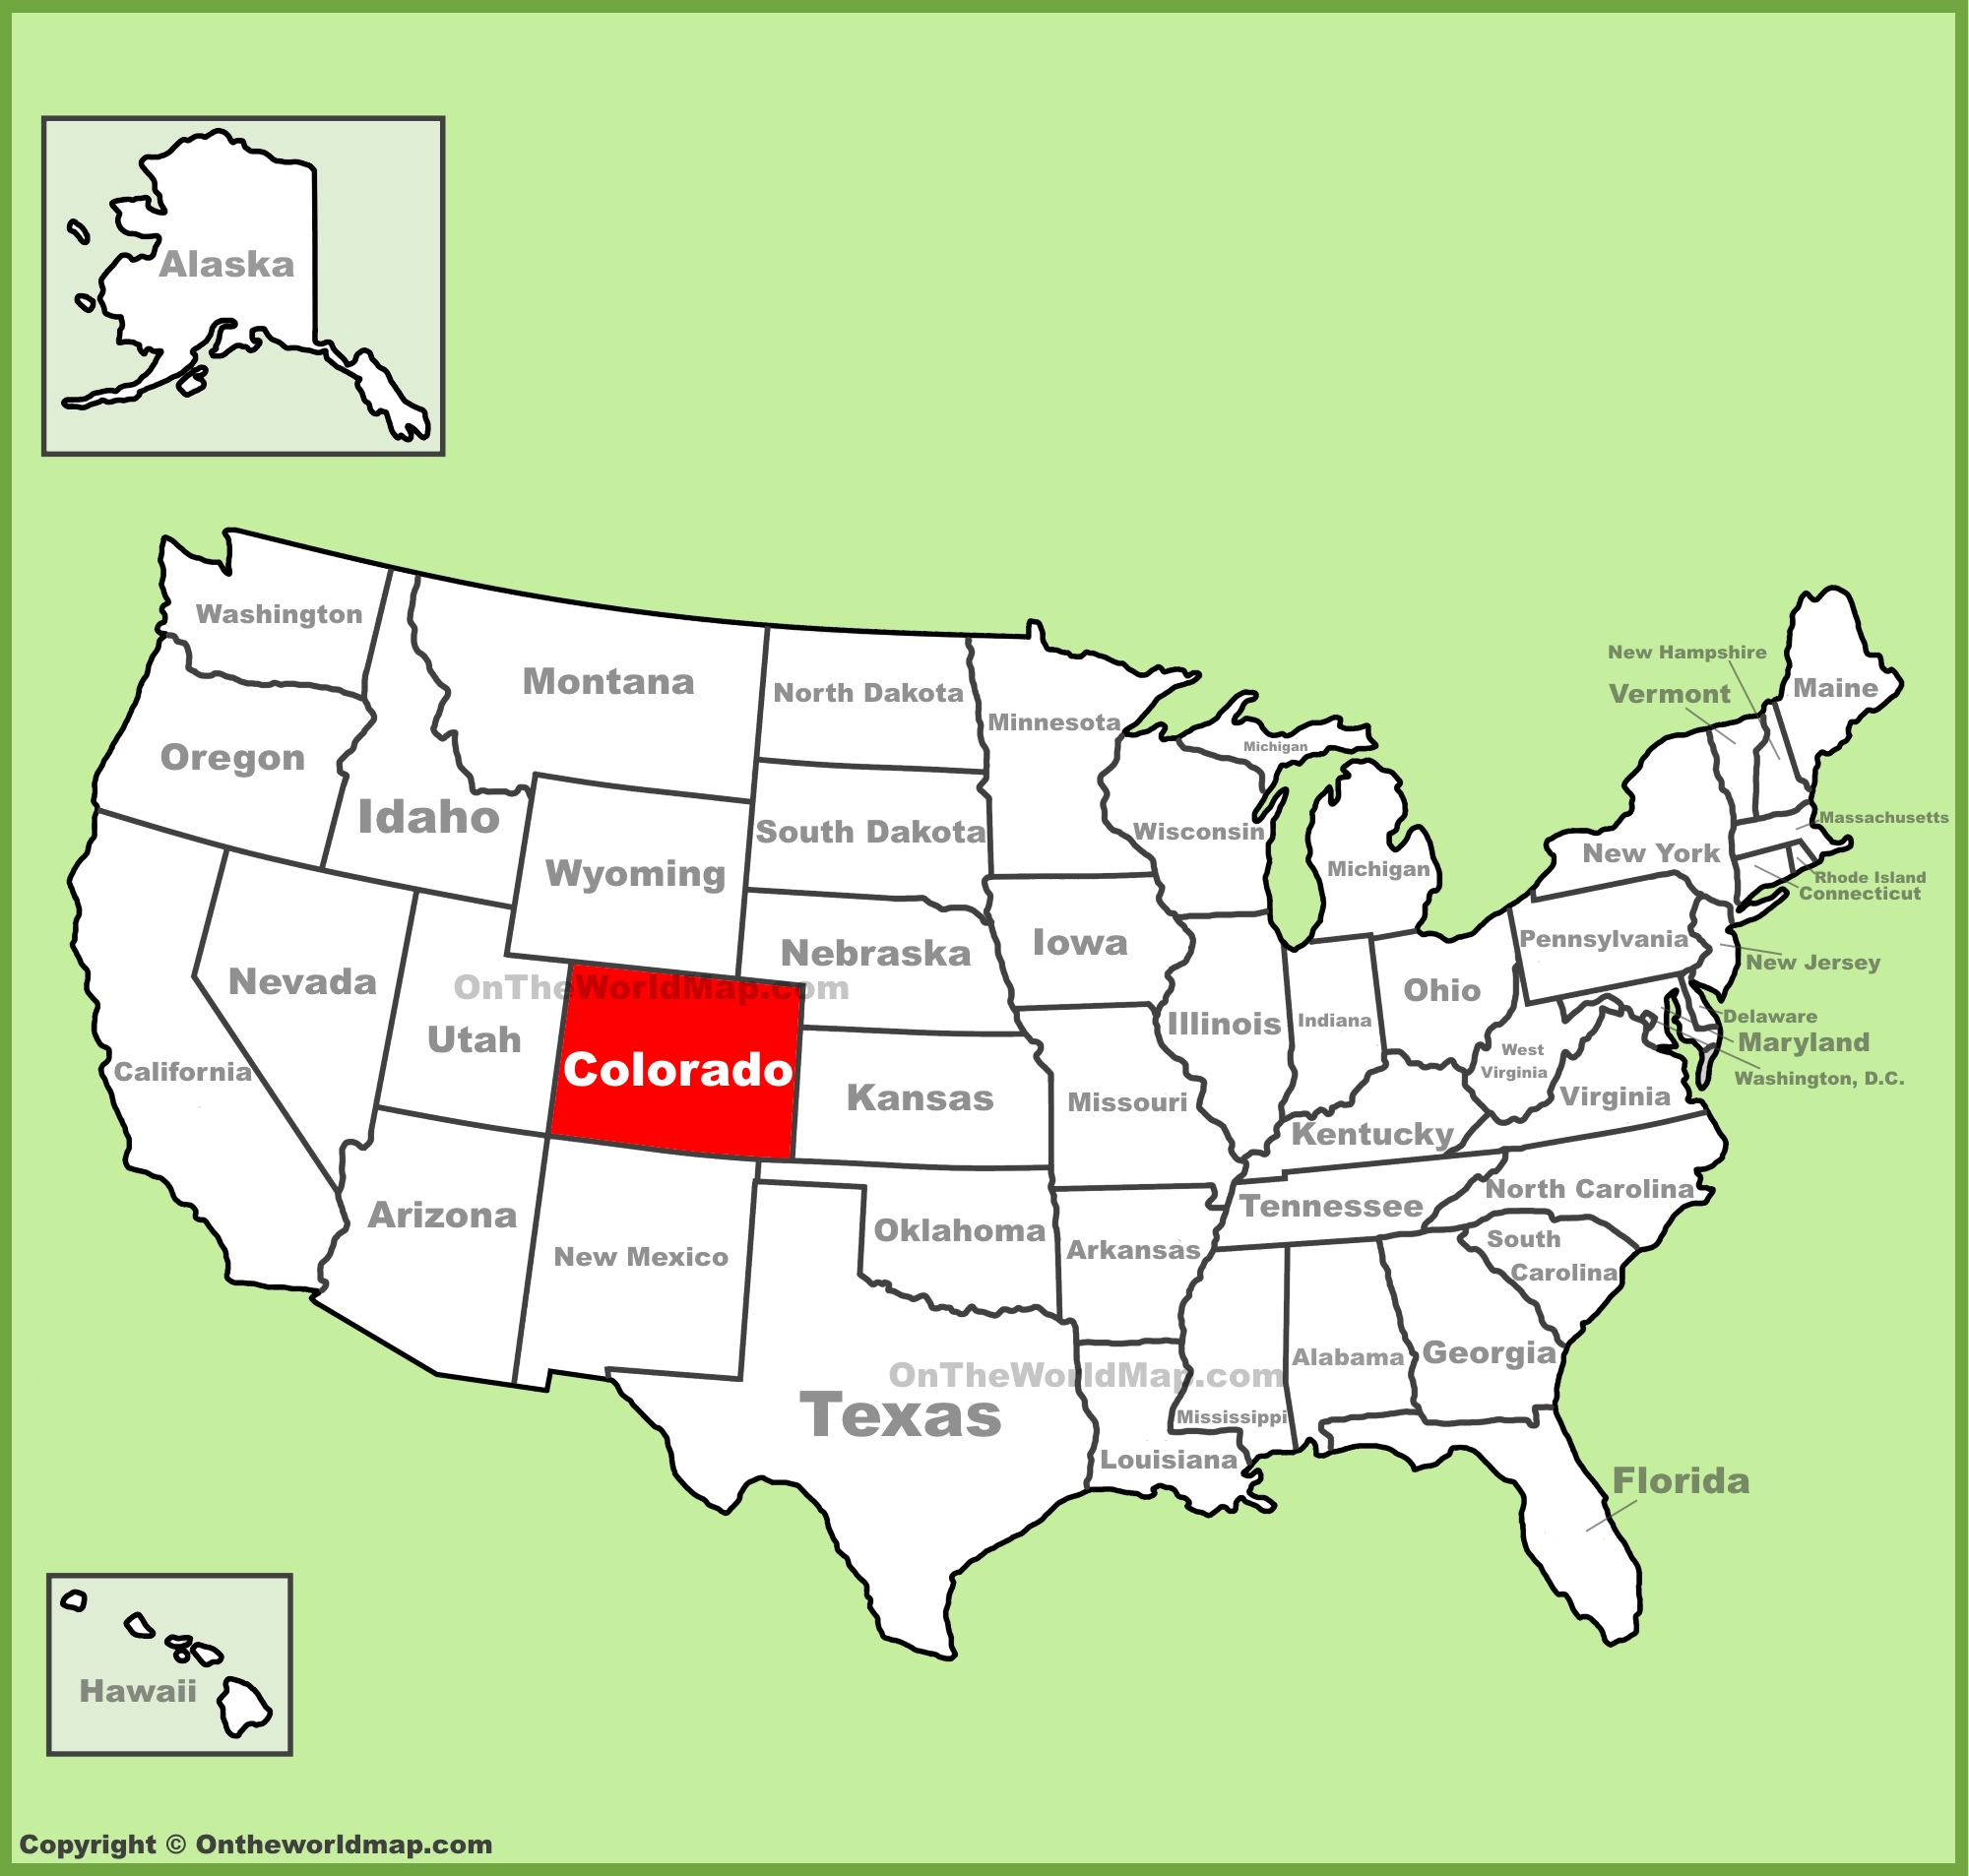 Colorado location on the U.S. Map